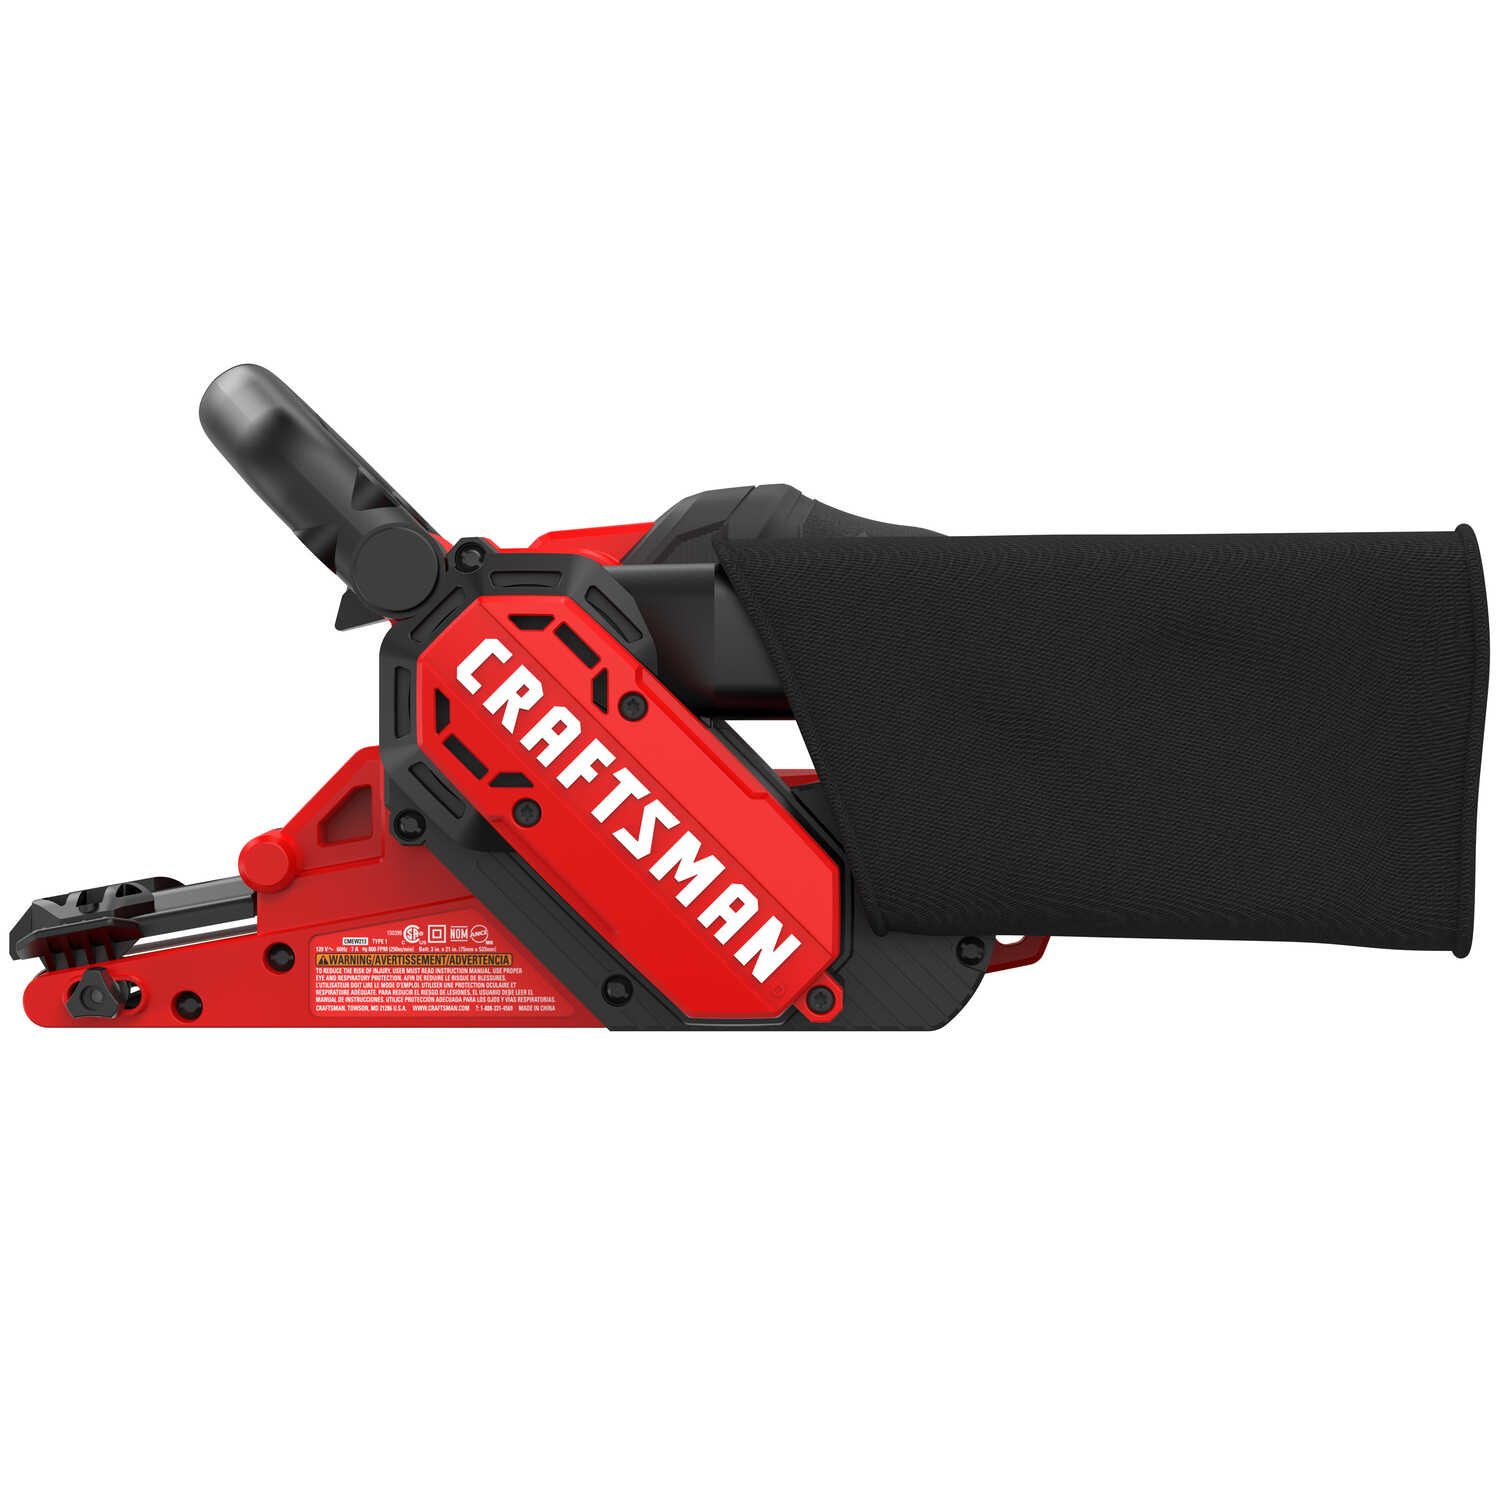 Craftsman  21 in. L x 3 in. W Corded  Belt Sander  7 amps 800 FPM Variable Speed